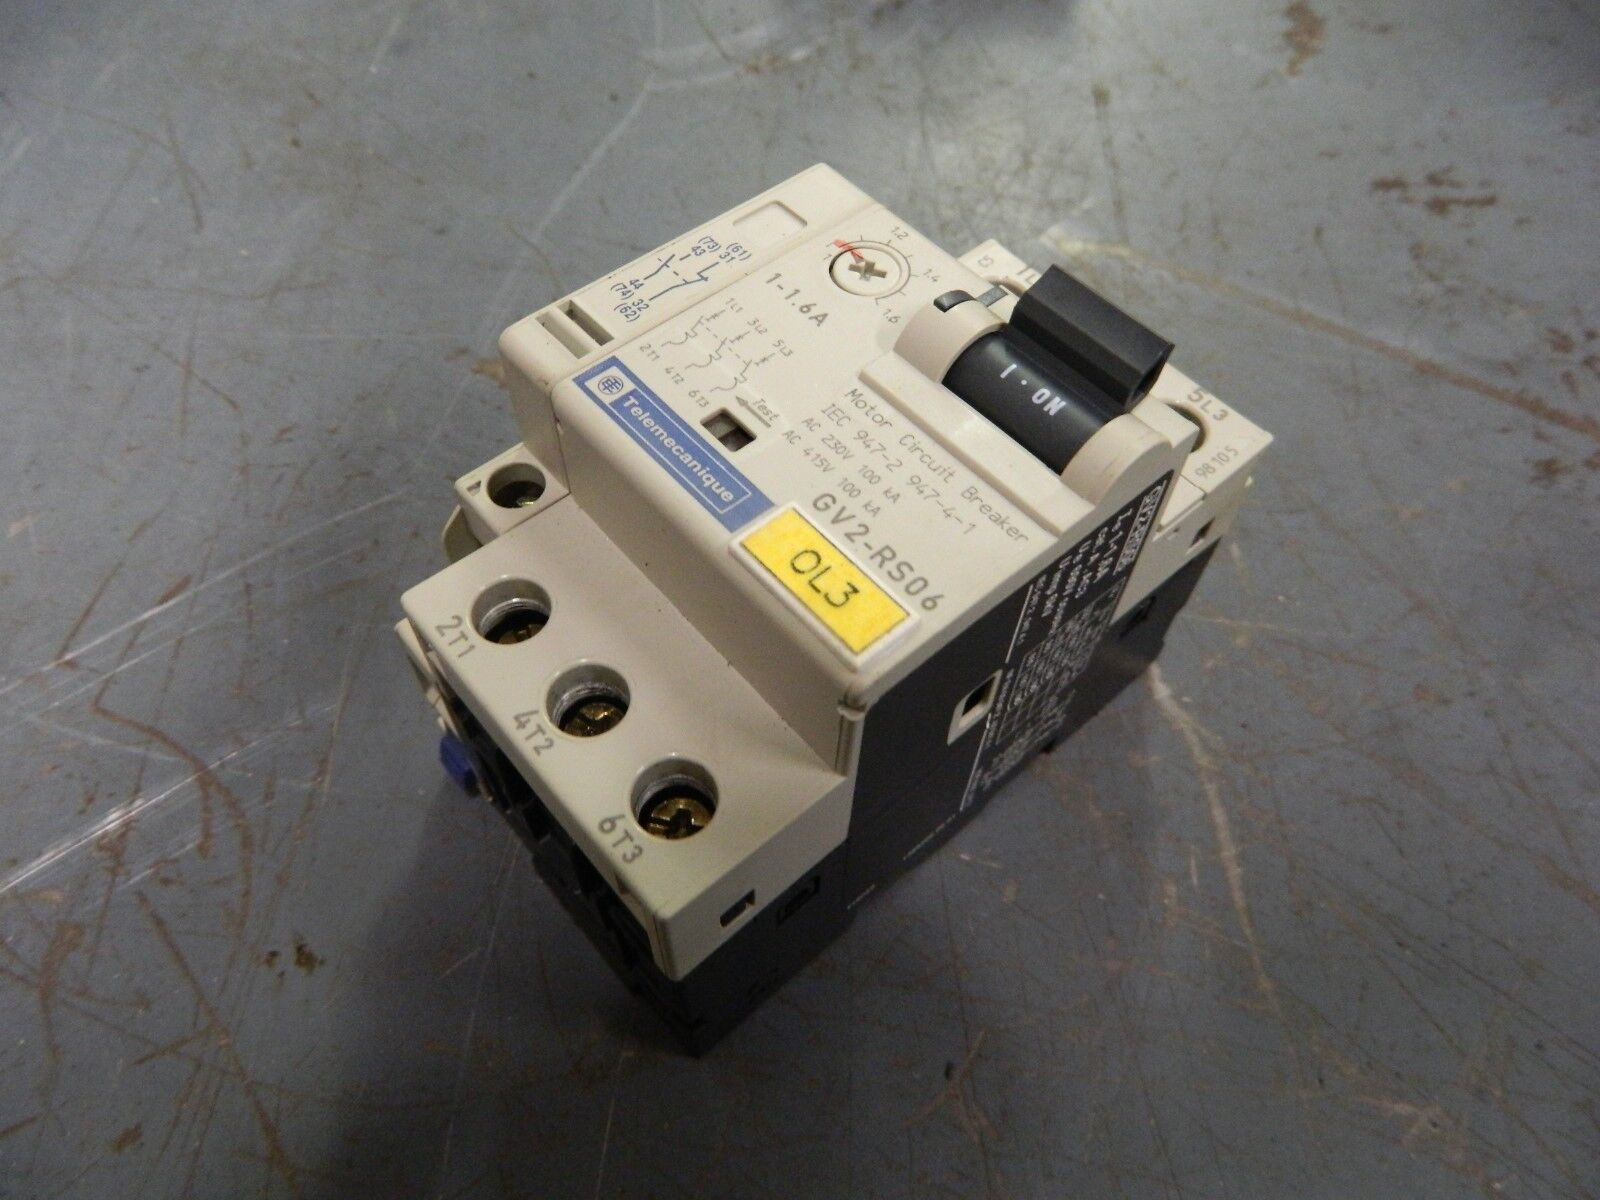 Telemecanique Motor Circuit Breaker, GV2-RS06, 1.0-1.6A, W/ GV2-AN11, Used